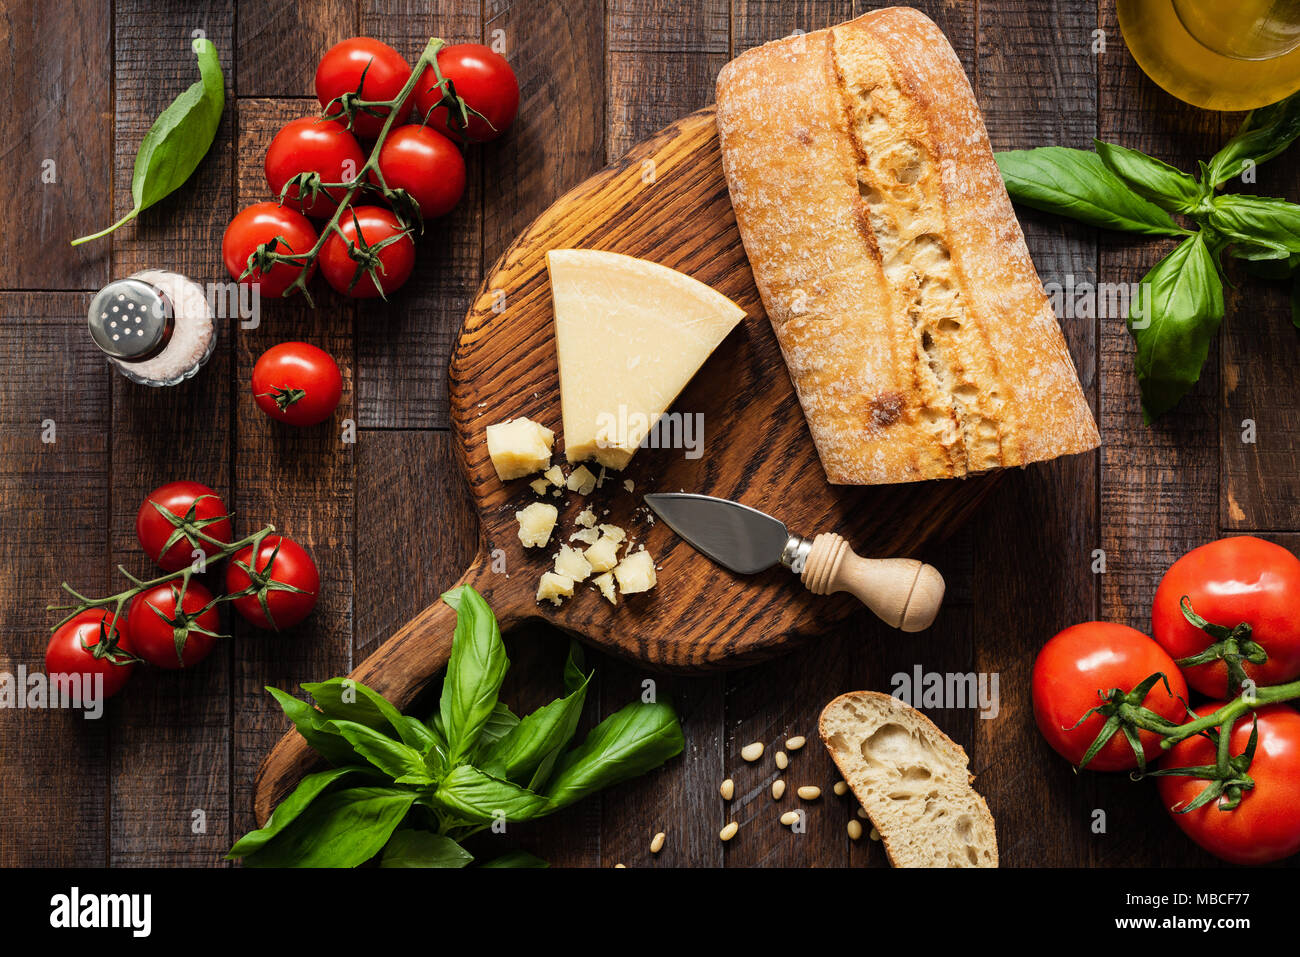 Italian food Parmesan cheese, Ciabatta bread, Bruschetta, Tomatoes and Basil on Rustic Wood Background. Top view - Stock Image